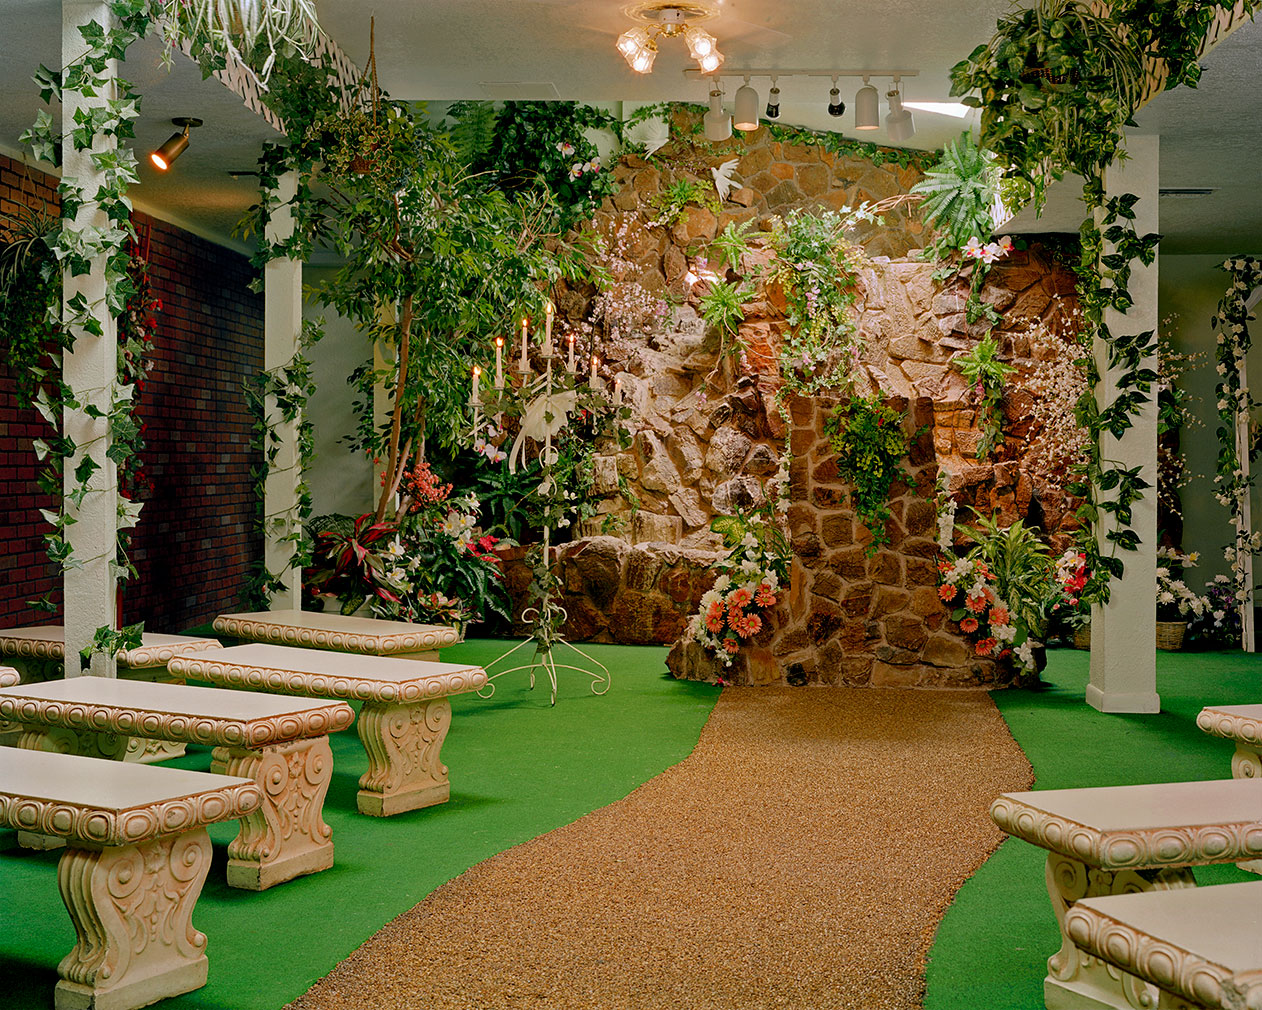 'The Garden Wedding Chapel', Las Vegas by Jane Hilton. Part of For Better Or For Worse at the Solaris Gallery, Hastings. Courtesy of the artist and gallery